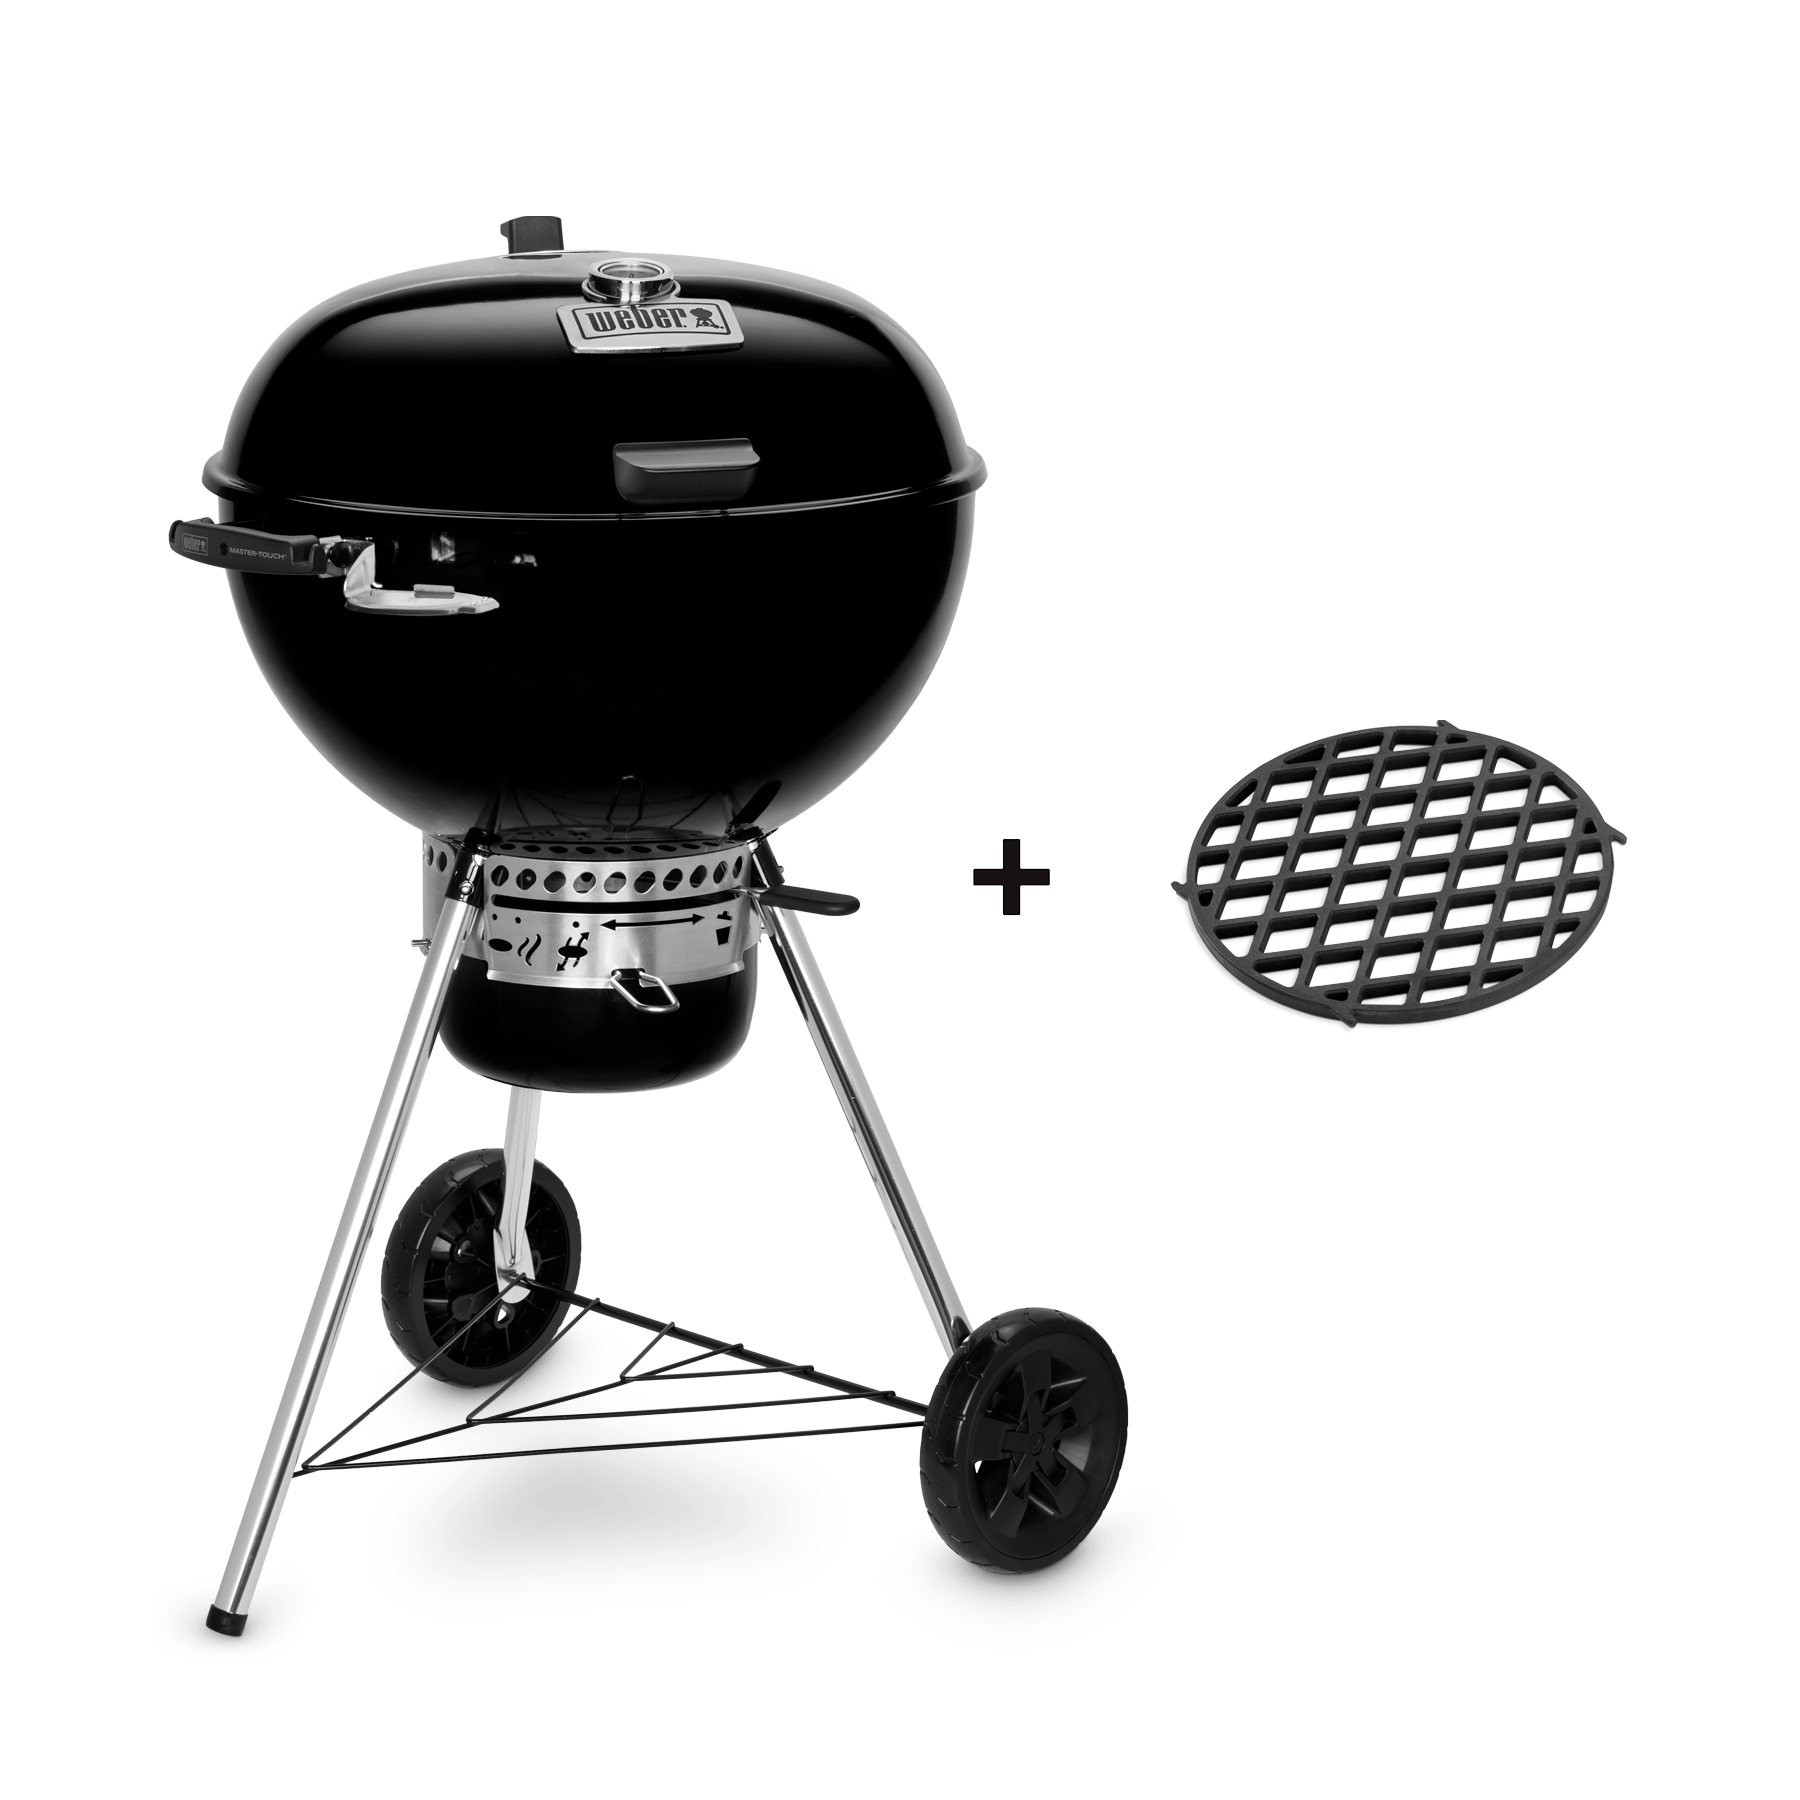 Weber Kettle Premium 57 Master Touch Gbs Premium E 5775 Charcoal Barbecue 57 Cm Official